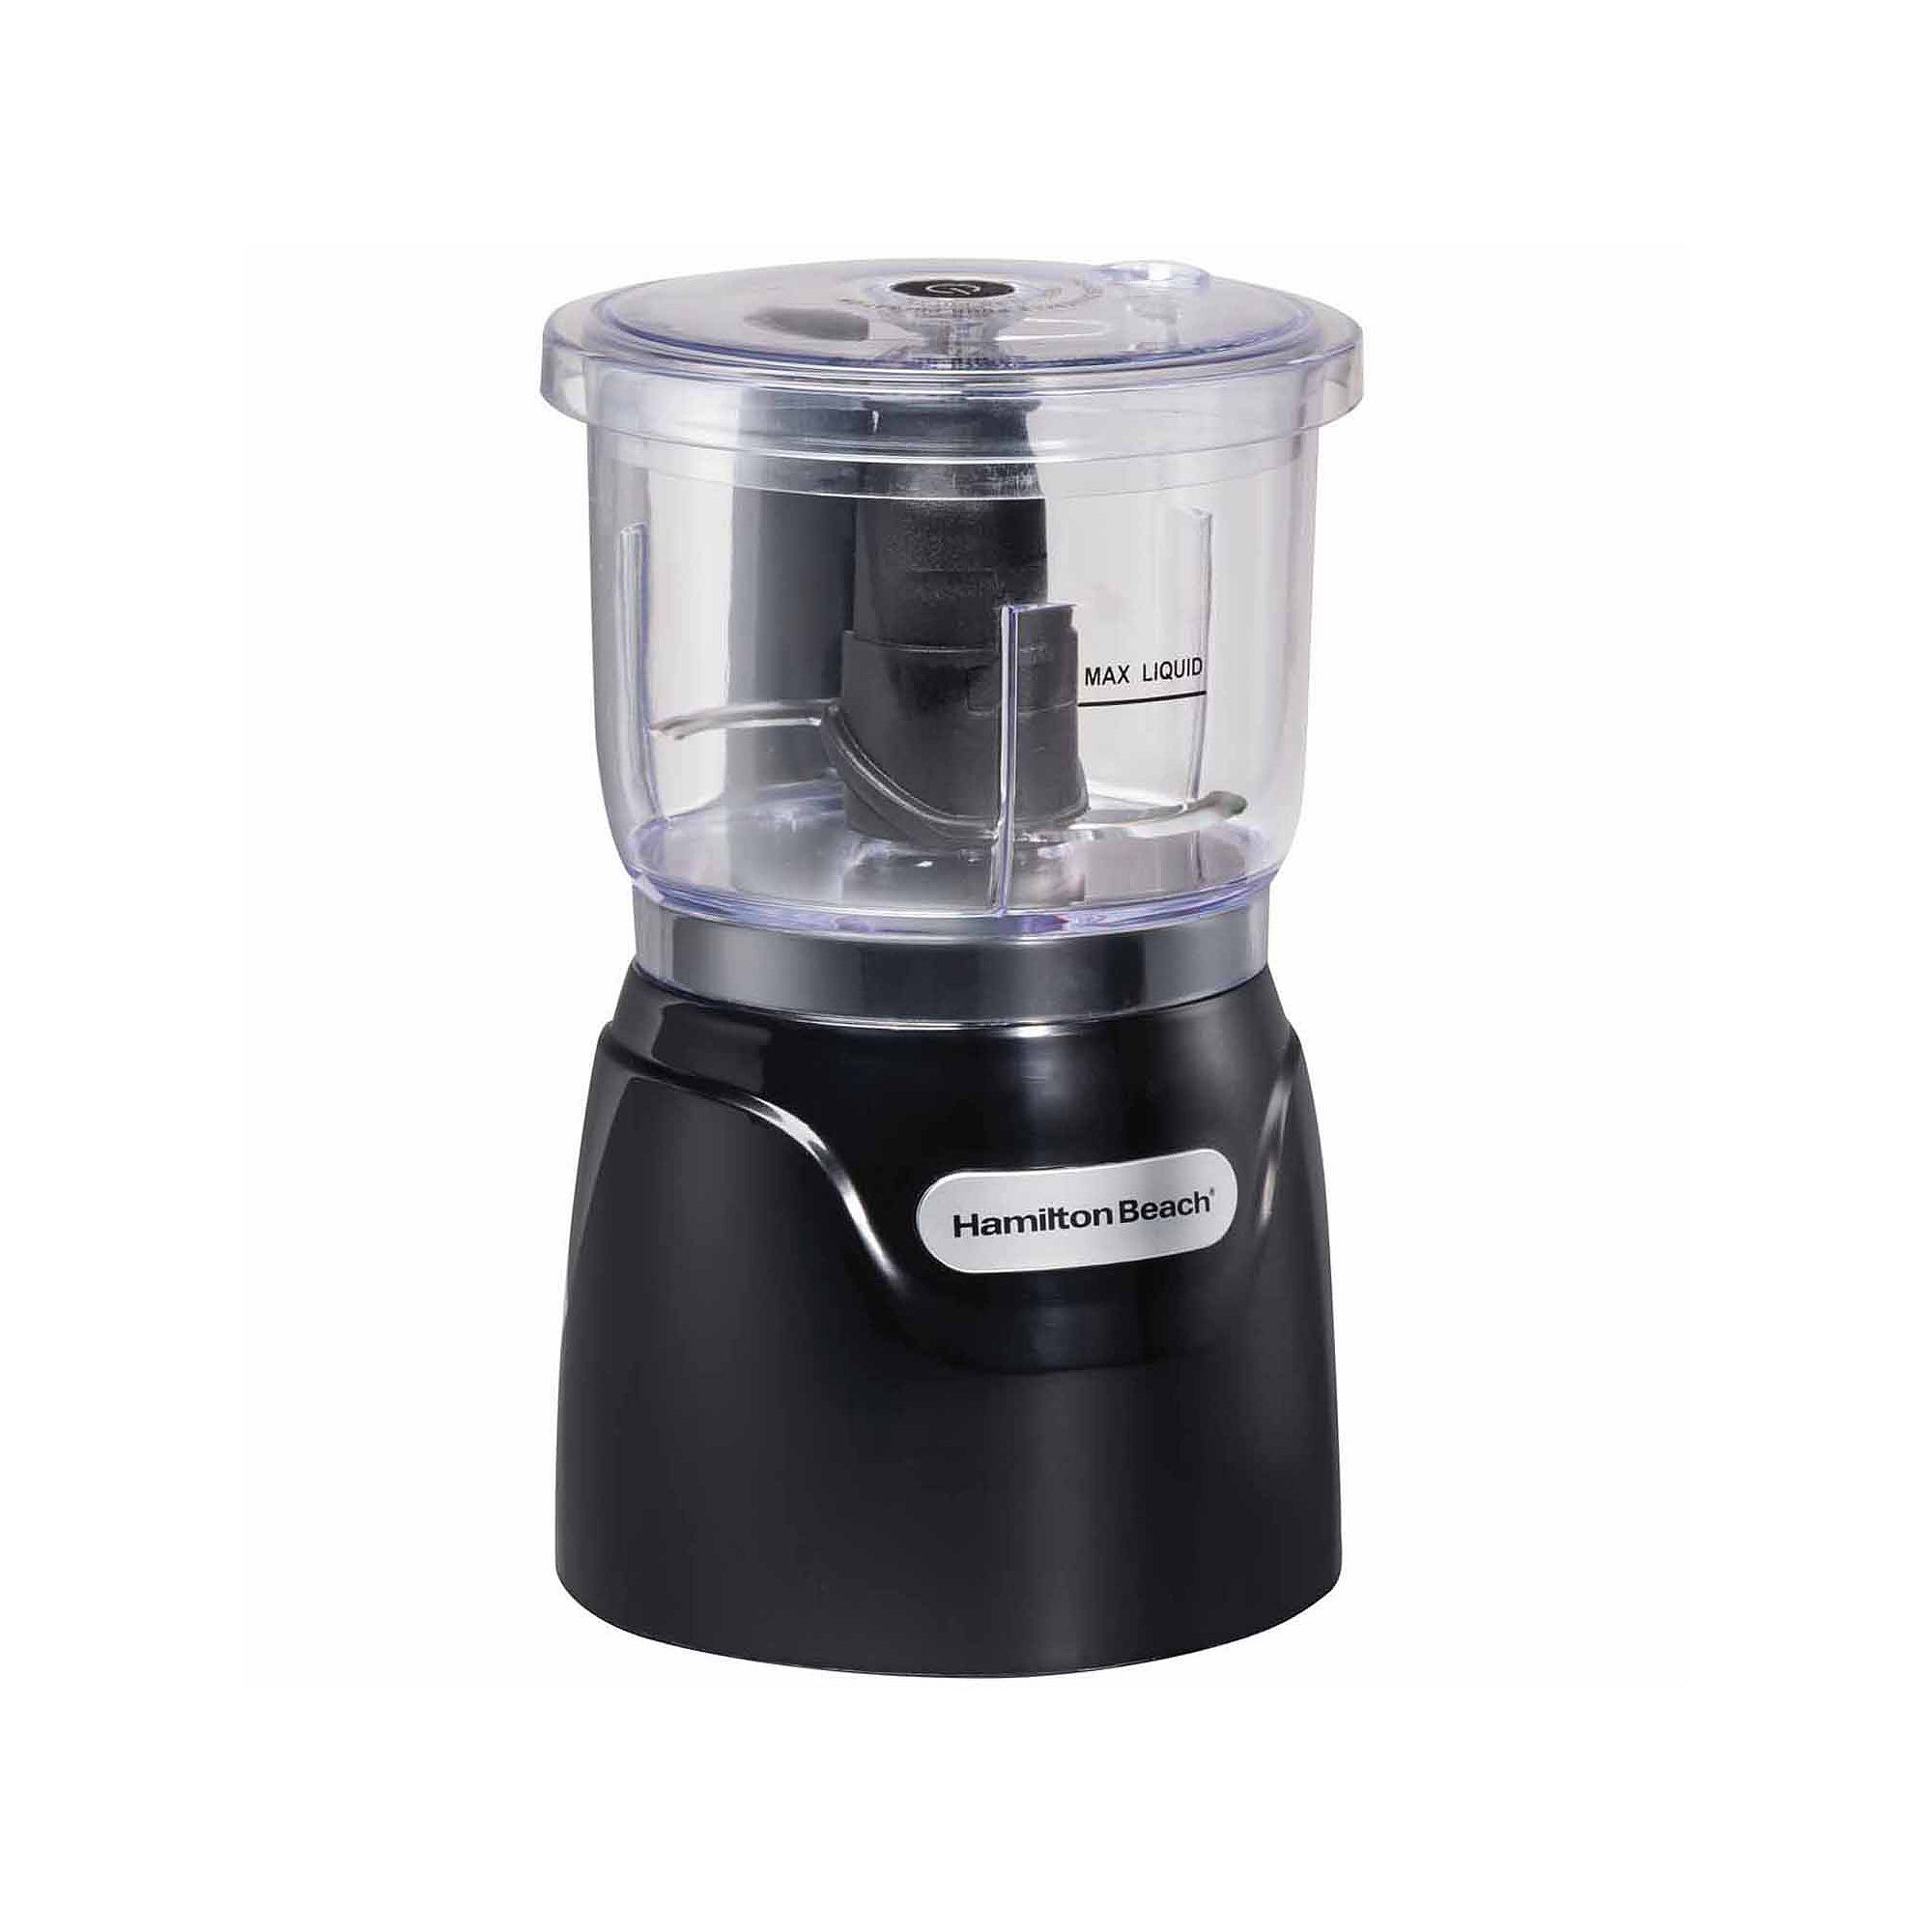 Hamilton Beach Stack & Press 3 Cups Food Processor